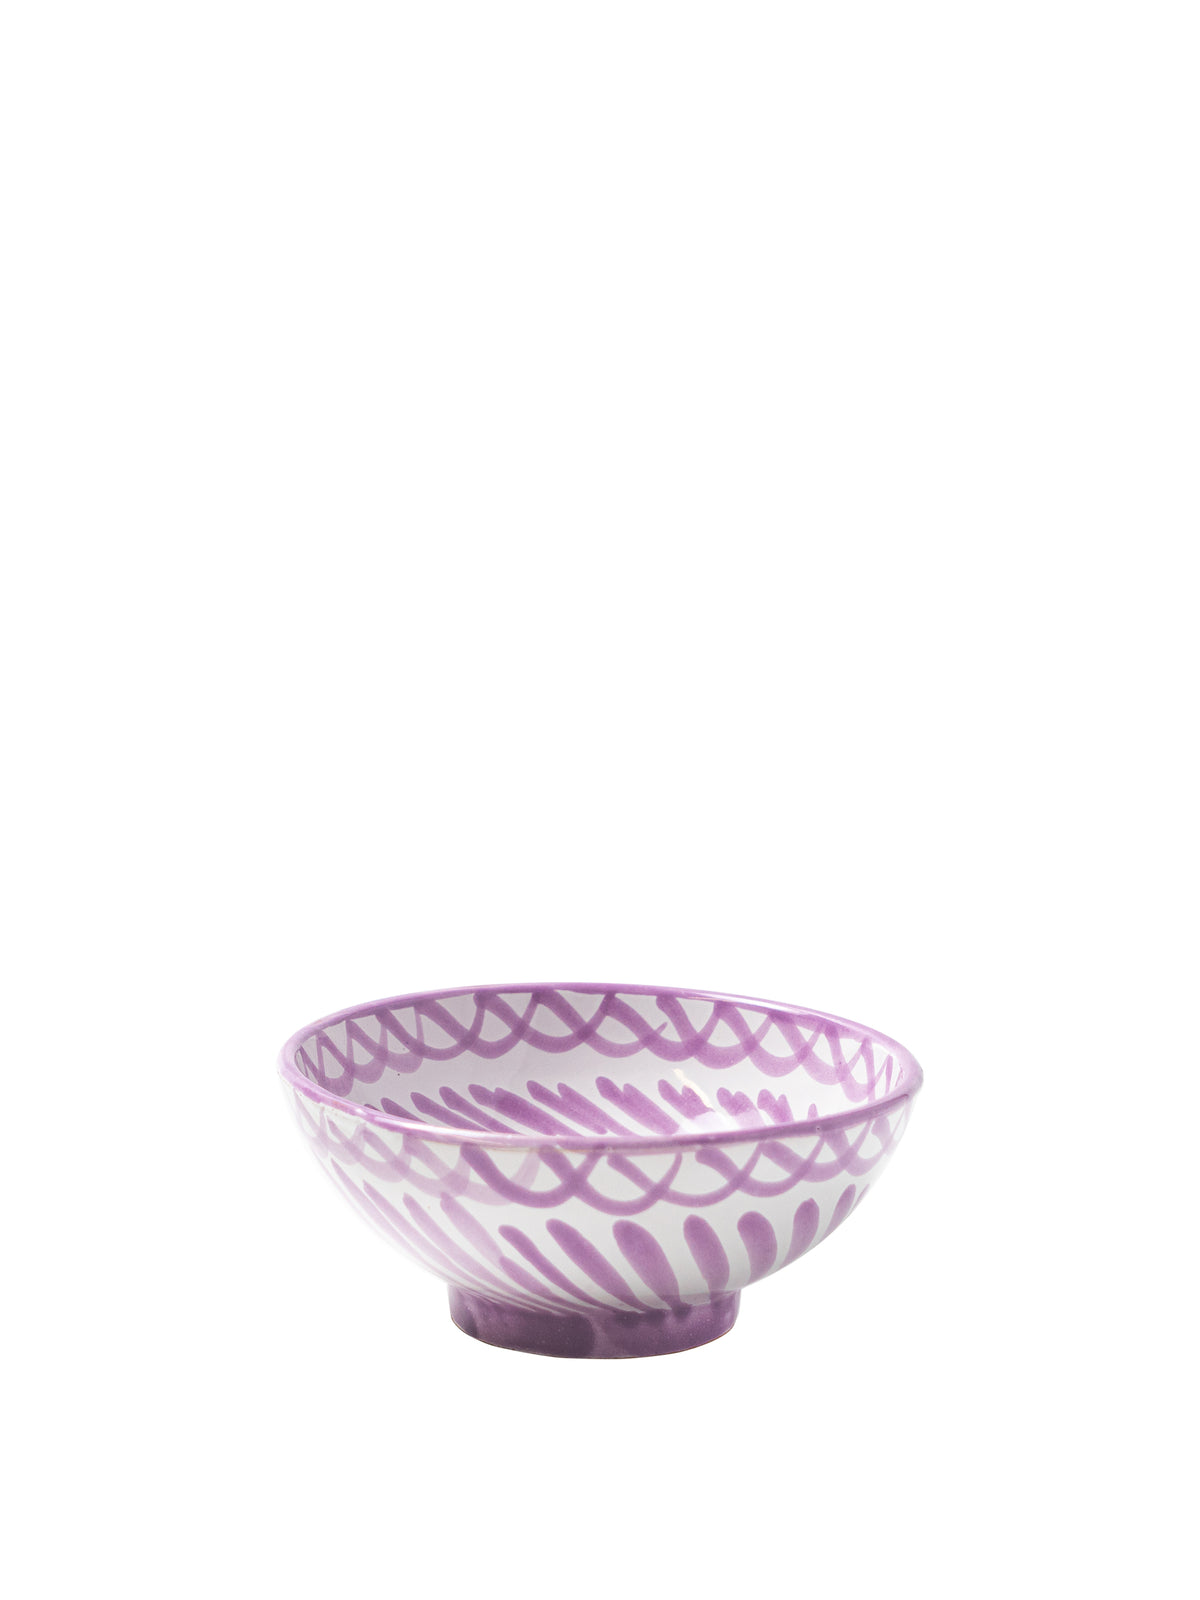 Casa Lila Small Bowl with Hand-painted Designs